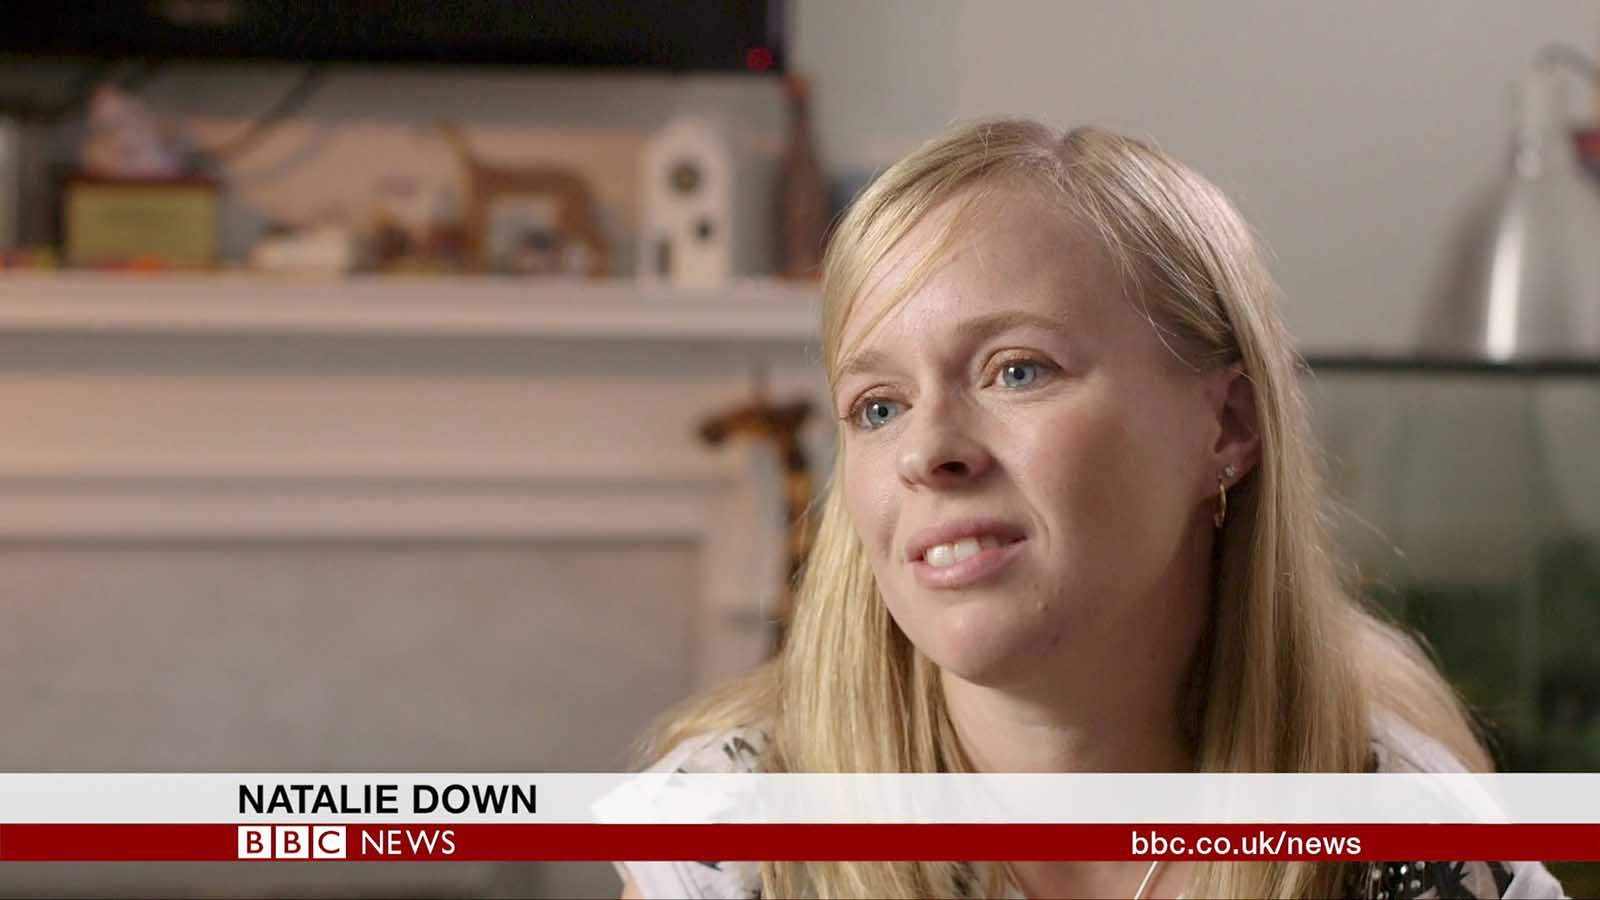 Our films broadcast on the BBC